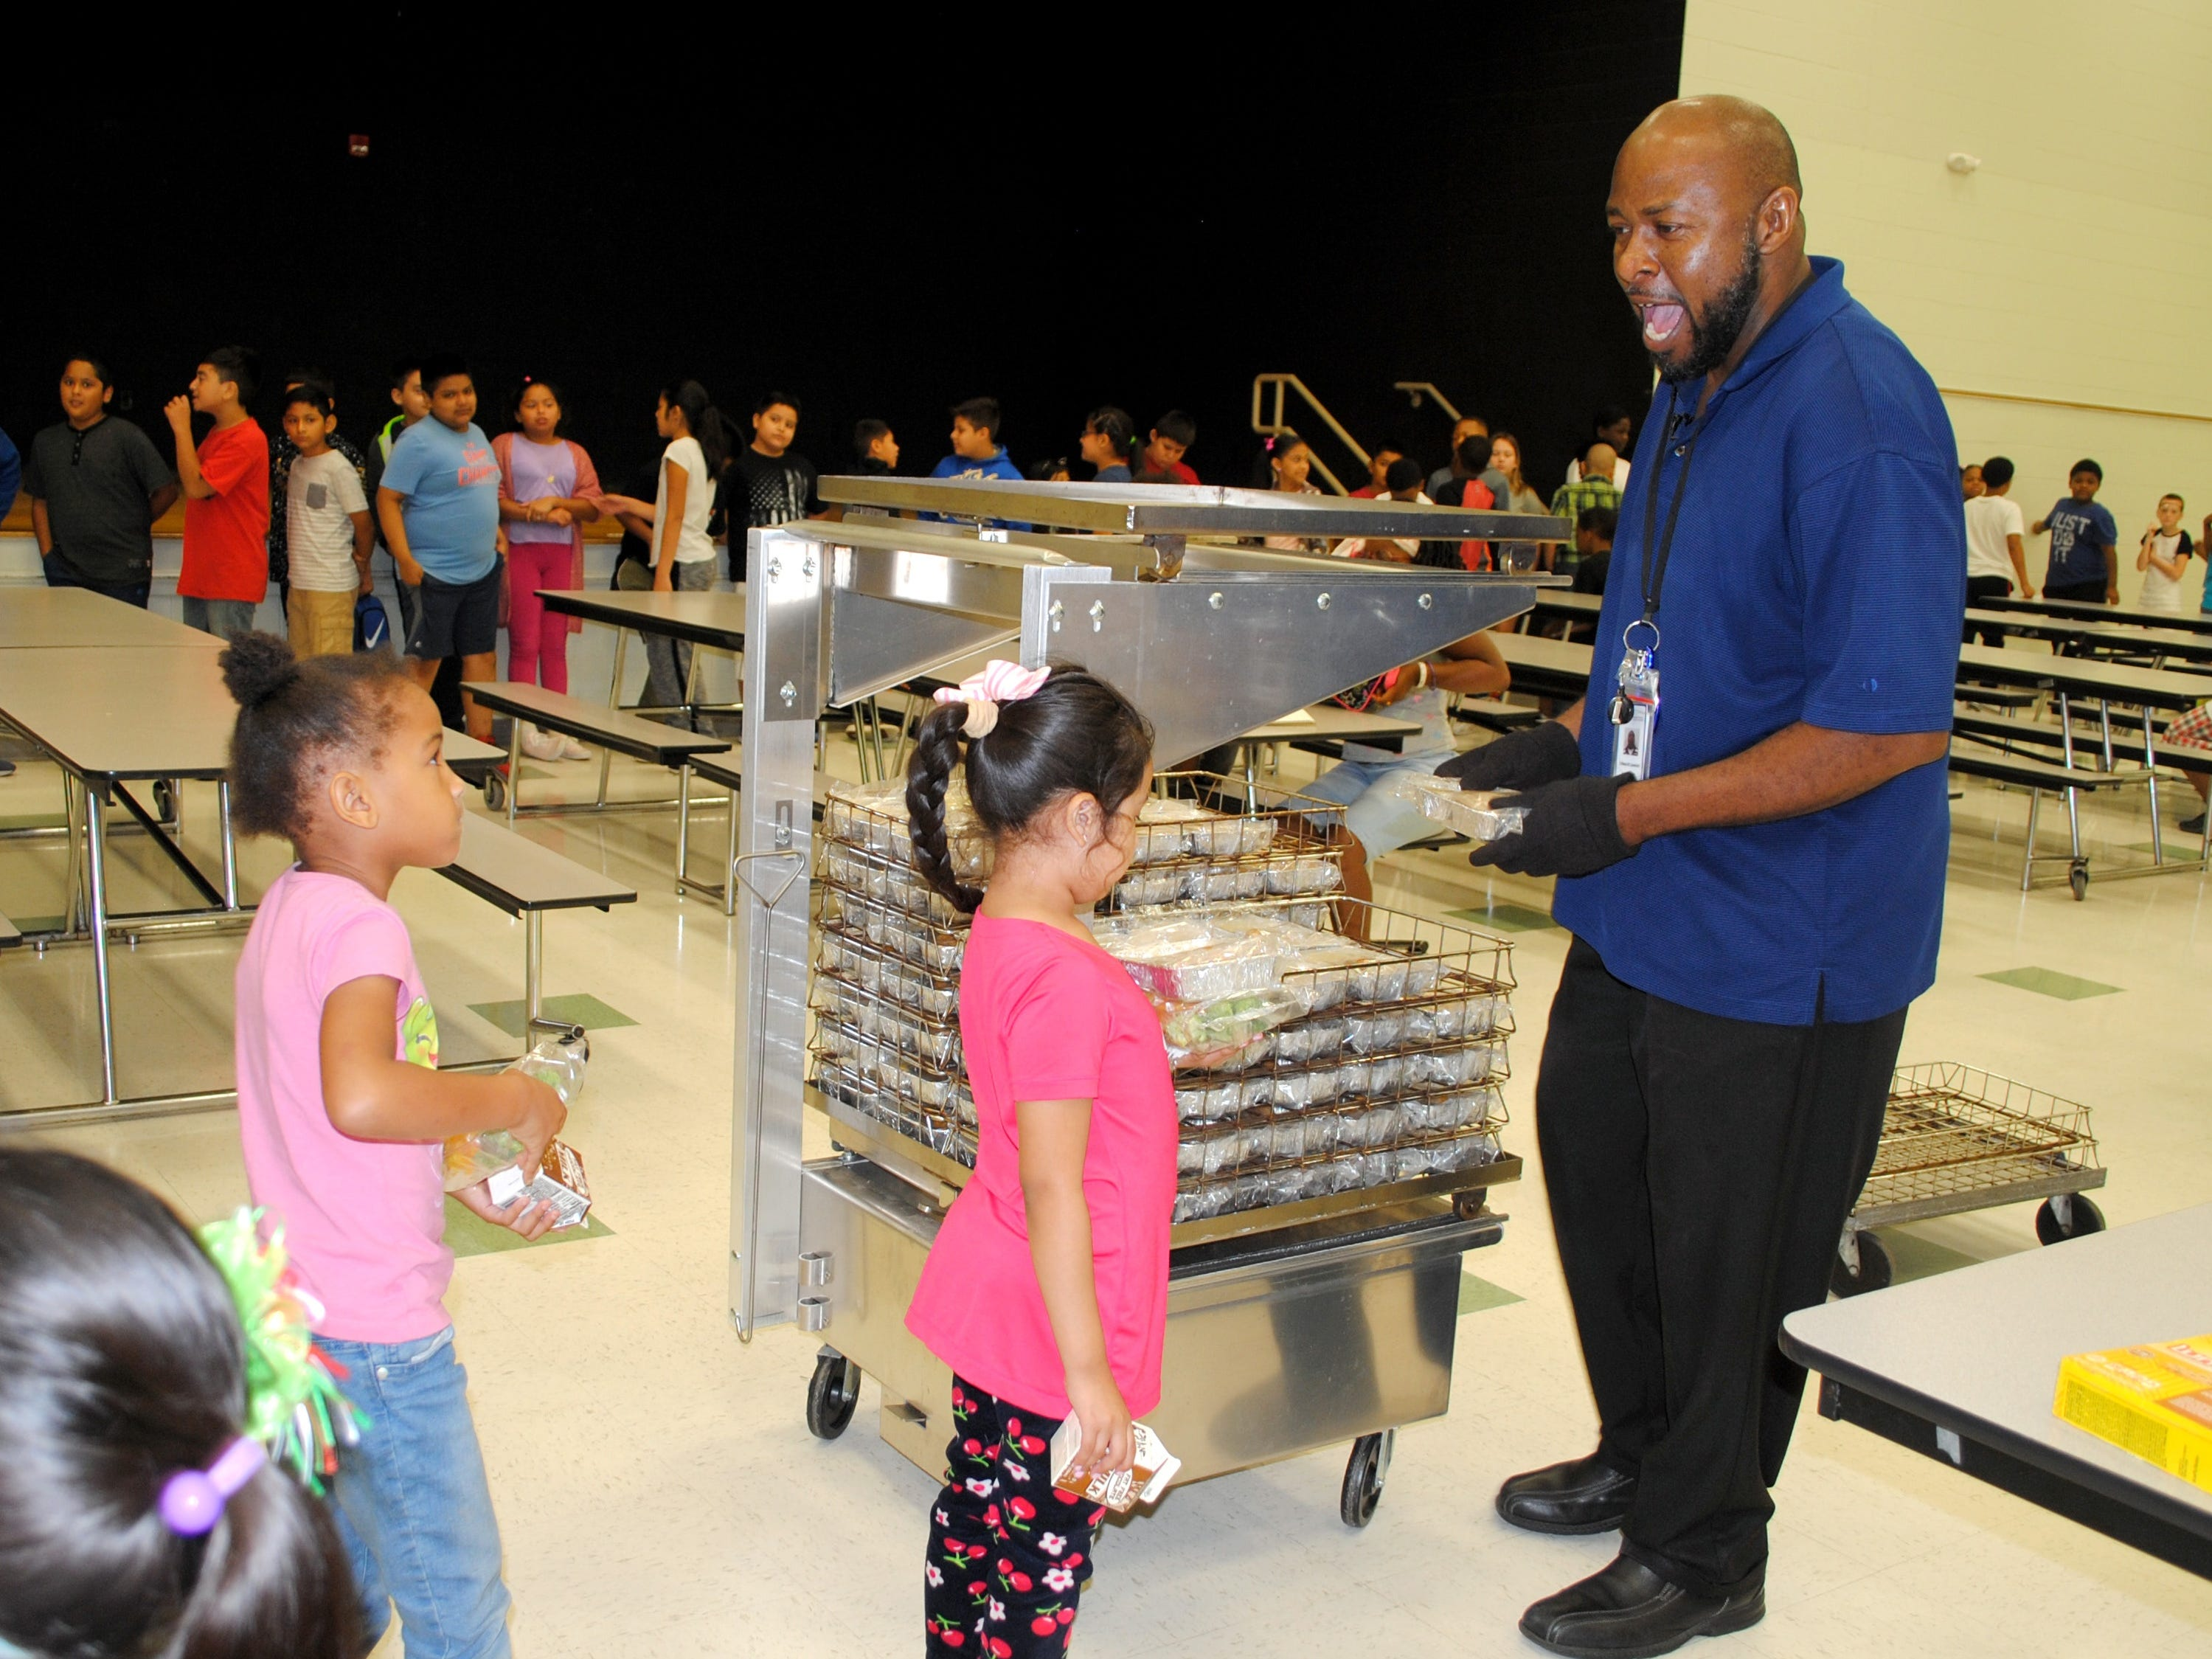 Racine WI – Edward Lawson hands out lunches to students. As a home substitute in the school Lawson fills in where he's needed at the school.